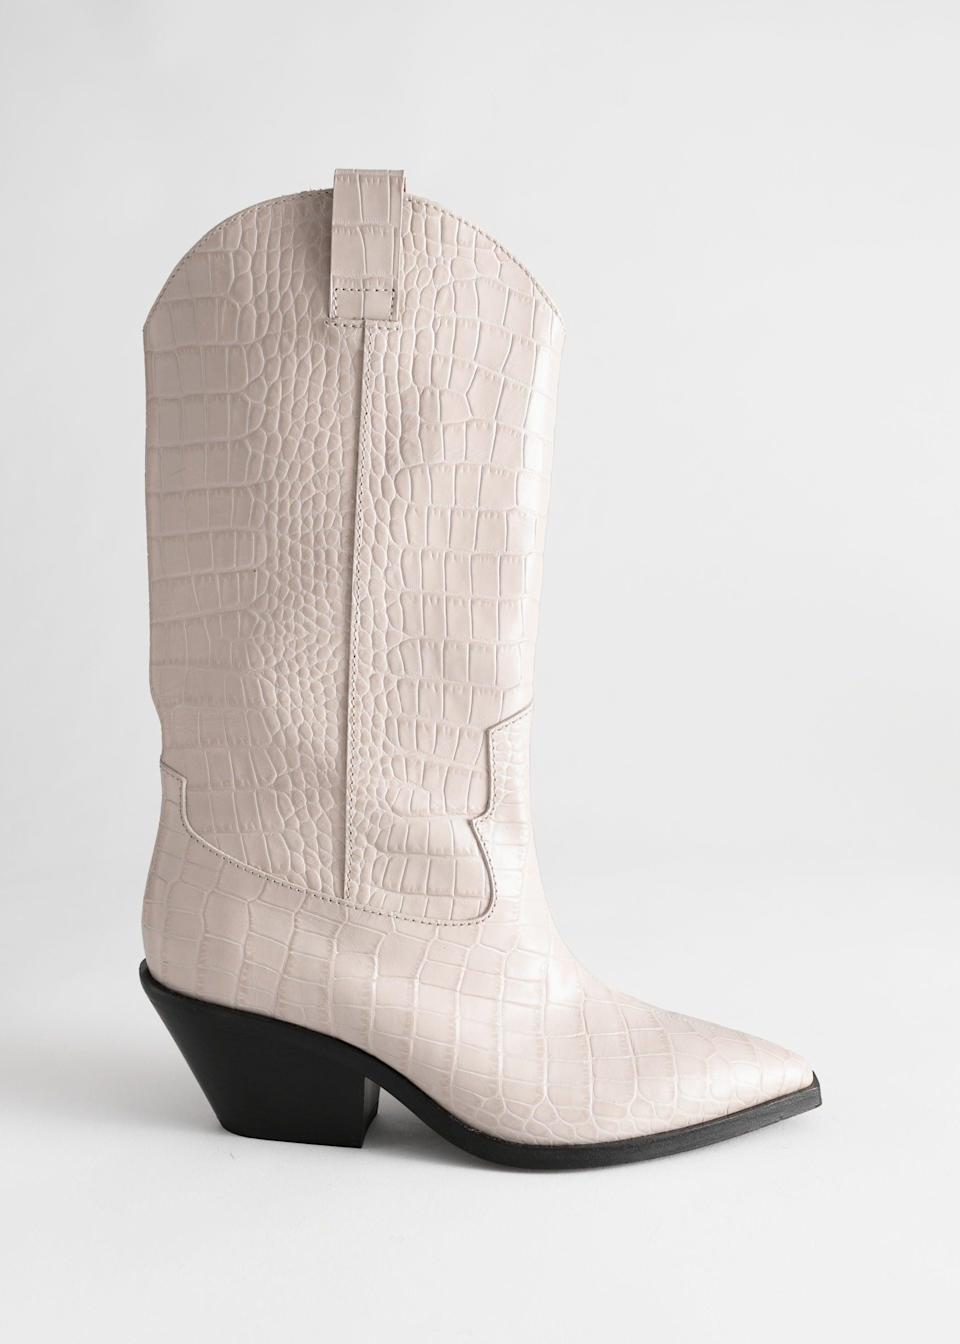 """<br><br><strong>& Other Stories</strong> Croc Embossed Leather Cowboy Boots, $, available at <a href=""""https://www.stories.com/en_gbp/shoes/boots/product.croc-embossed-leather-cowboy-boots-white.0794834001.html"""" rel=""""nofollow noopener"""" target=""""_blank"""" data-ylk=""""slk:& Other Stories"""" class=""""link rapid-noclick-resp"""">& Other Stories</a>"""